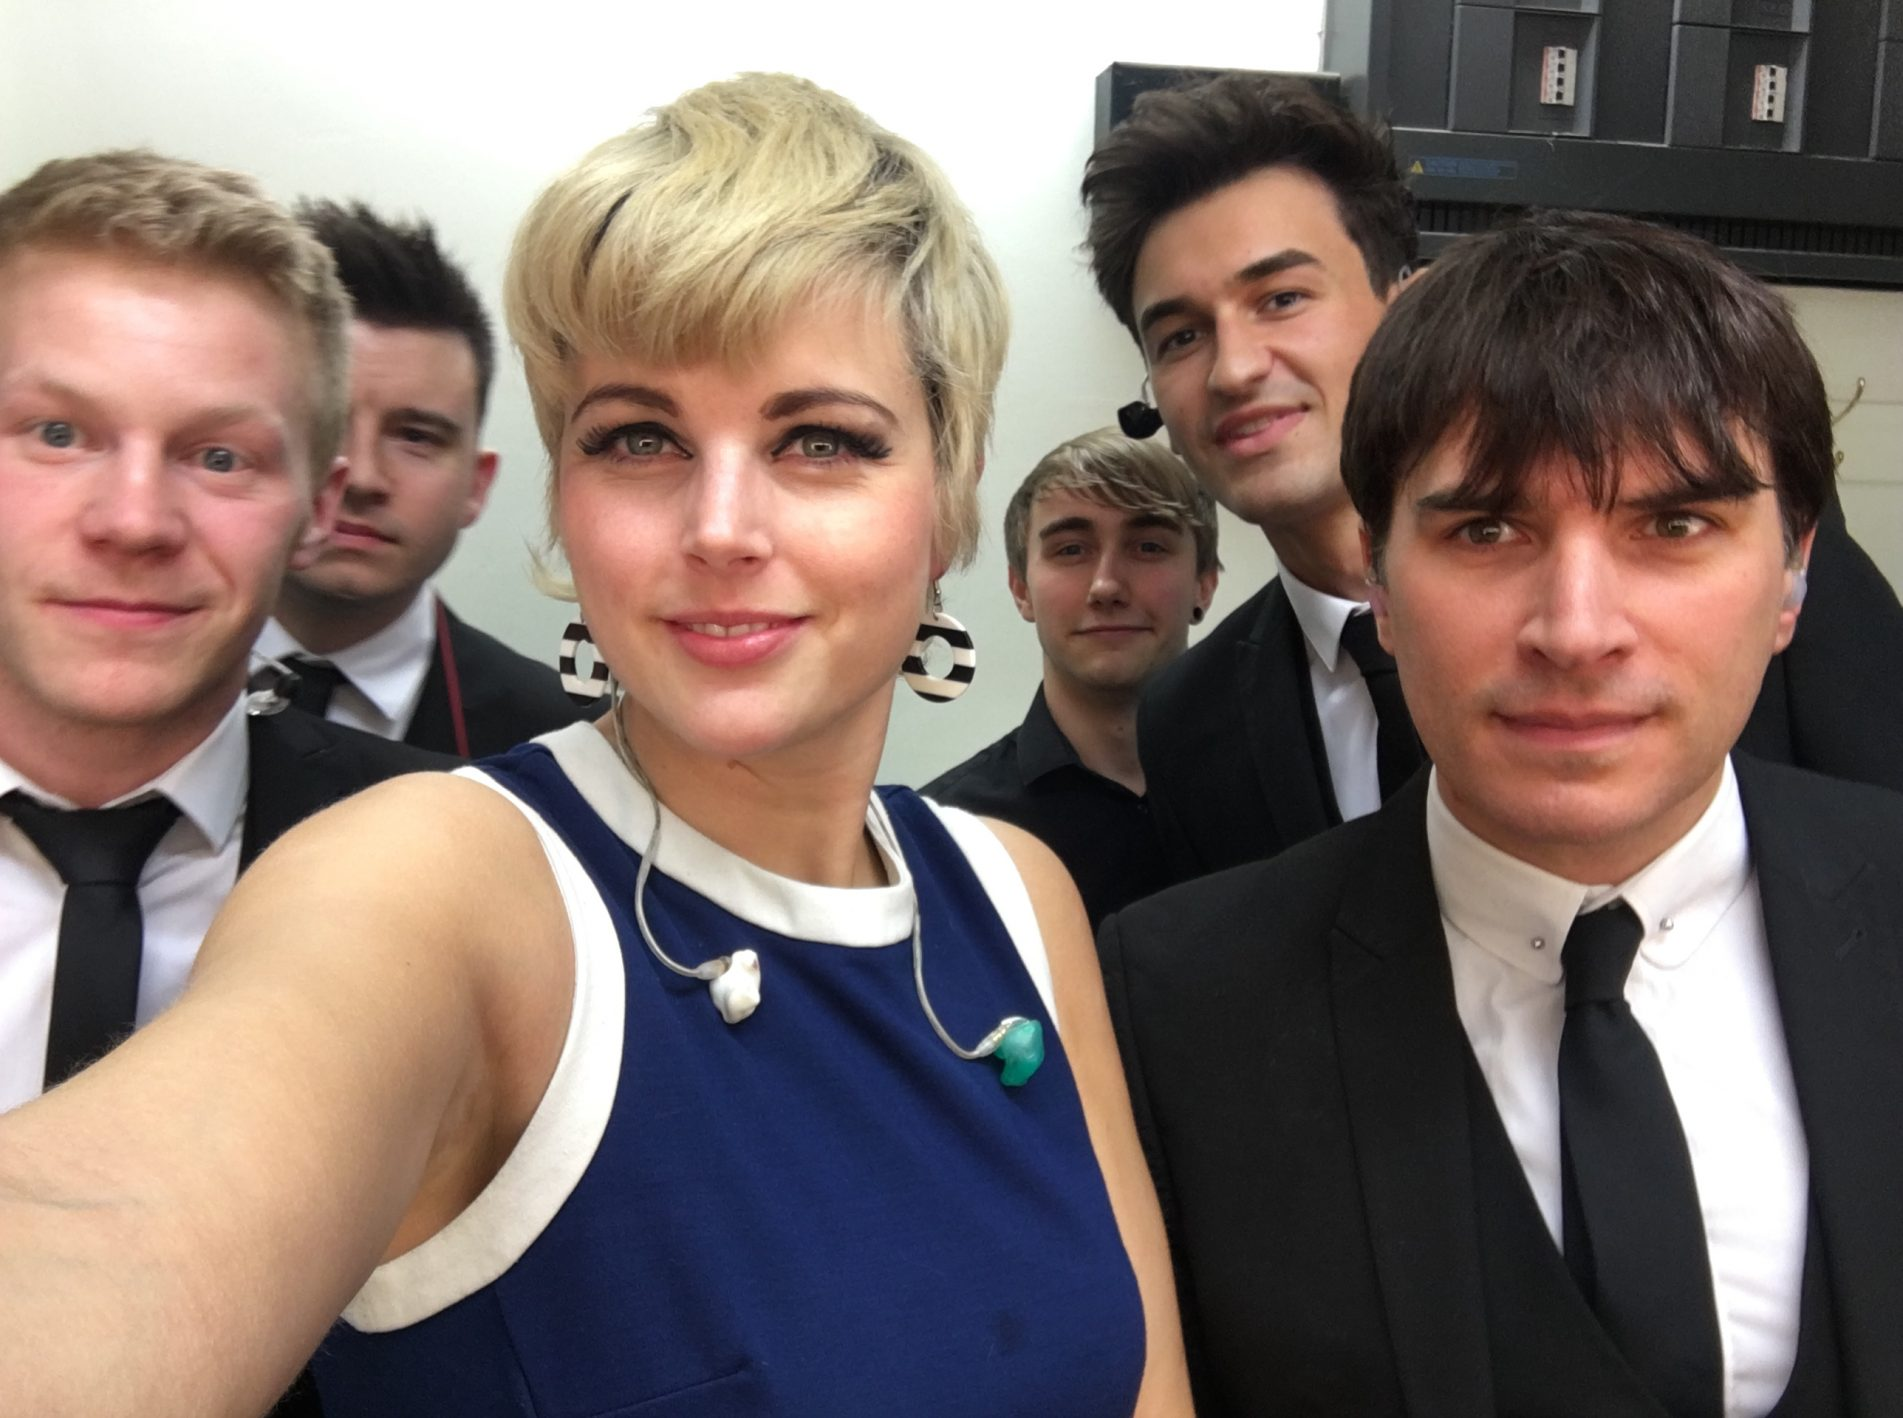 Huntington Hall Worcester, The Zoots, Sounds of the Sixties Show, The Zoots band, 60s music, 60s band, sixties band, sixties show, The Zoots sixties show, Huntington, Whats on Worcester, Jamie Goddard,